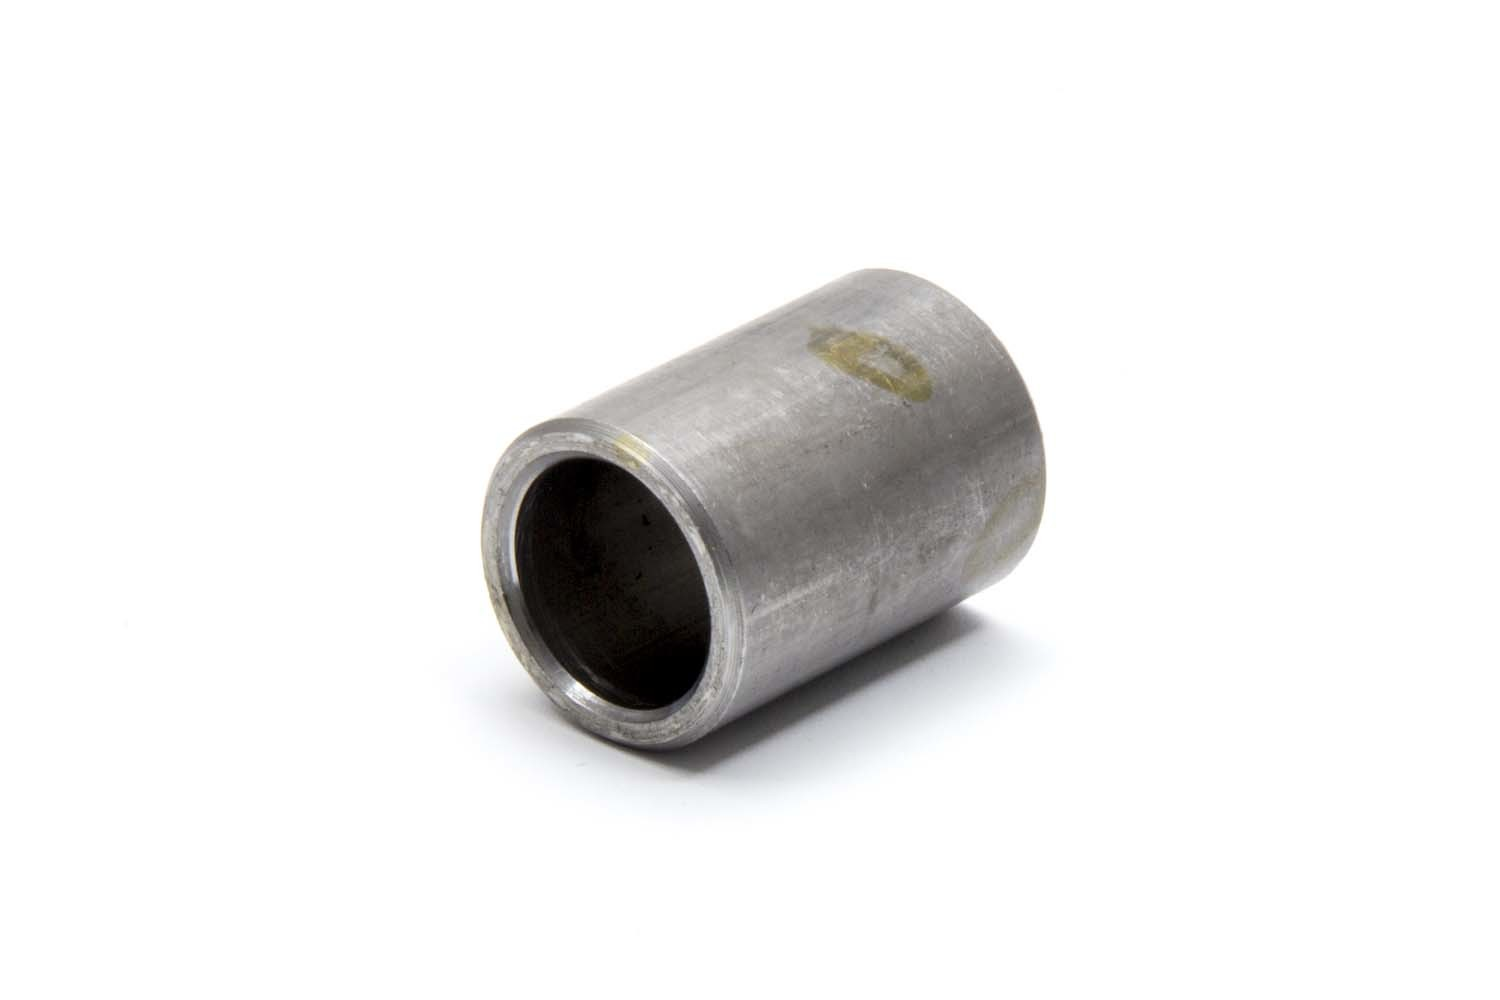 Spacer .75 ID x 1in OD x 1.4 Long